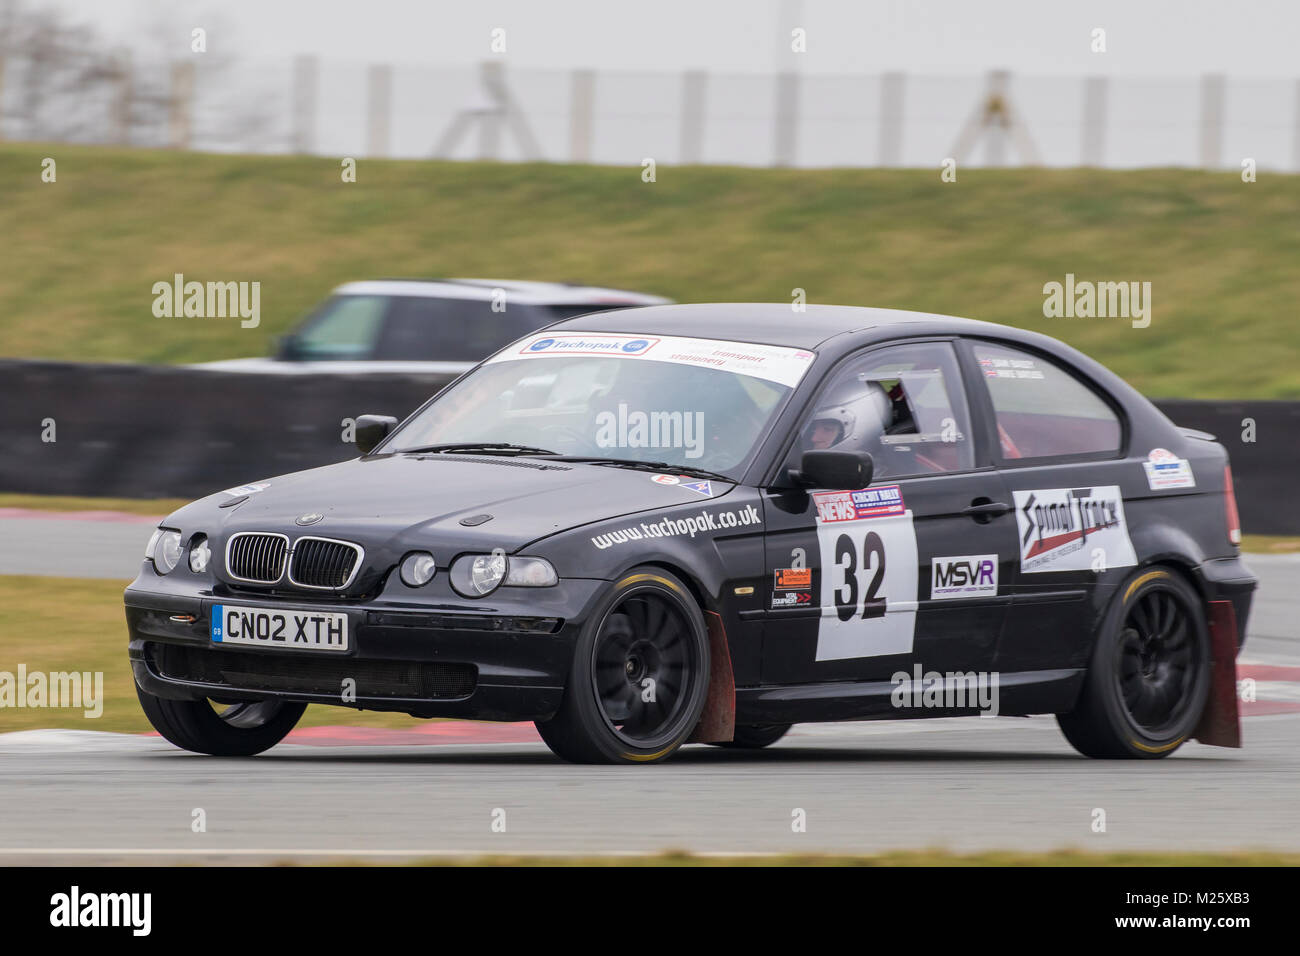 Bmw Compact With Driver Mike Bayliss And Co Driver Sam Bailey At The